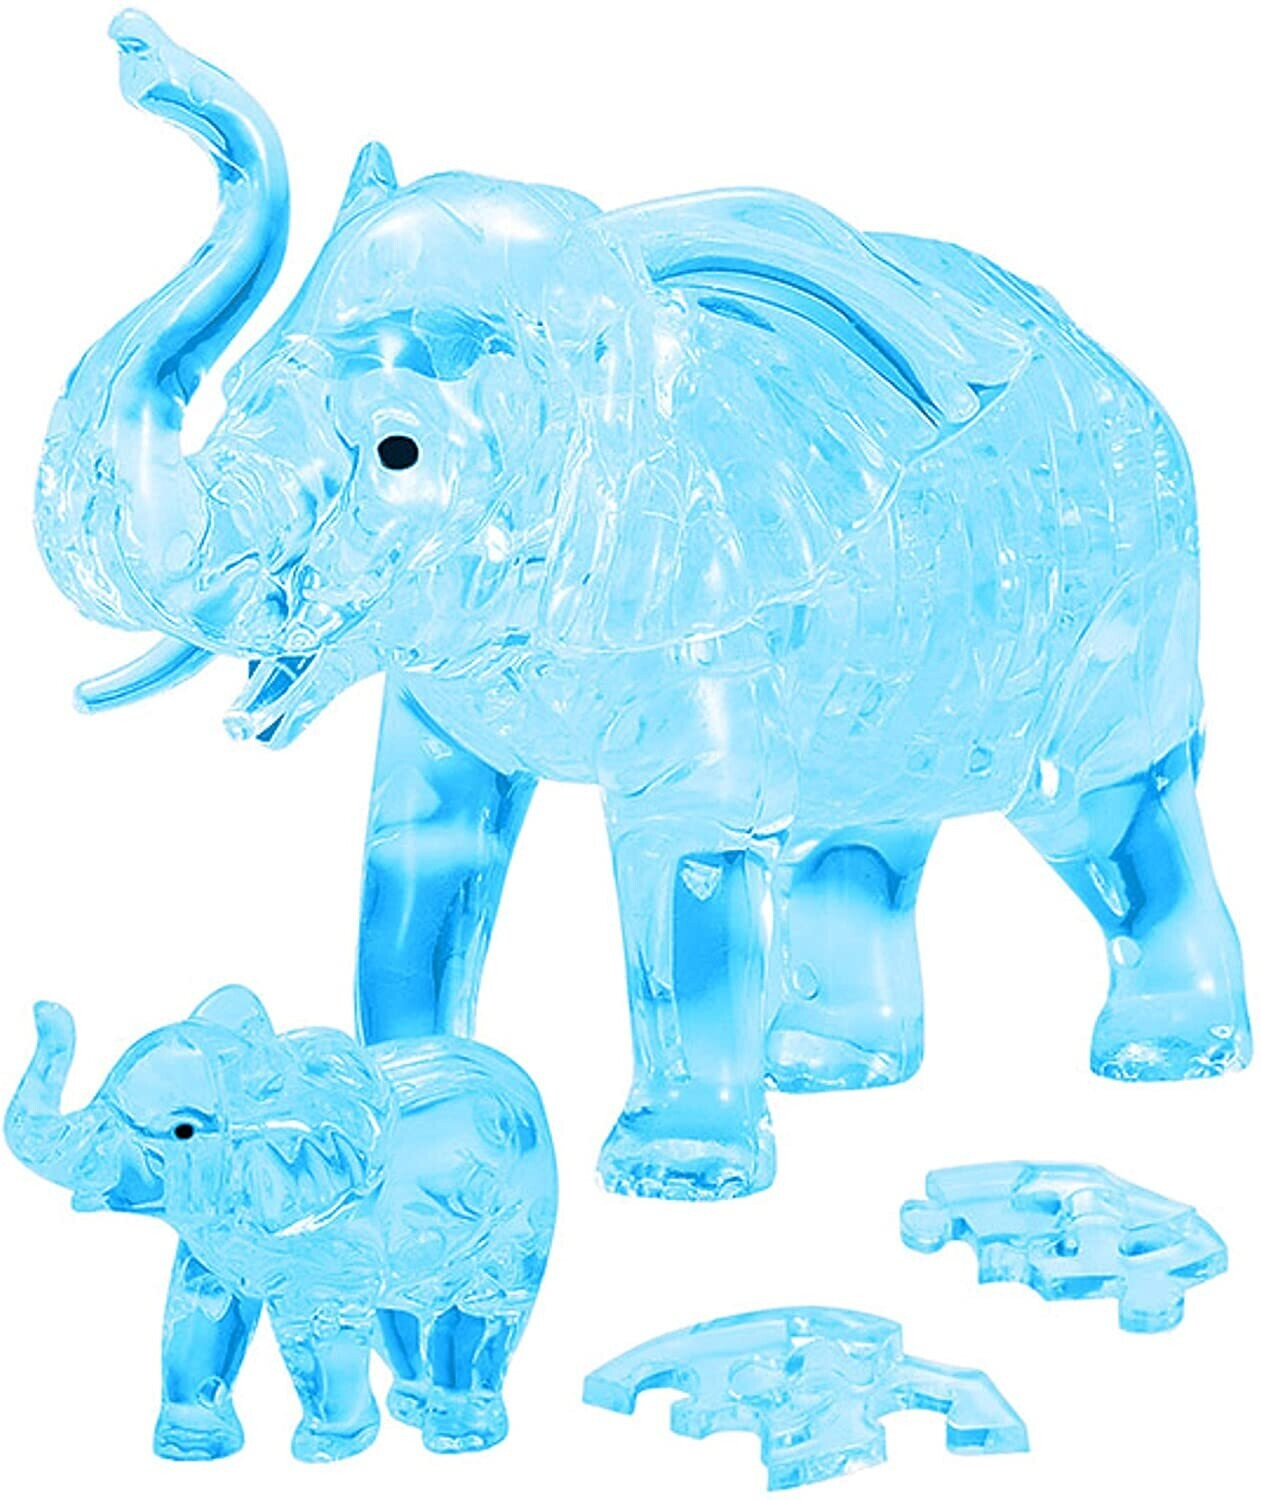 3D Crystal Elephant With Baby 46 Pc